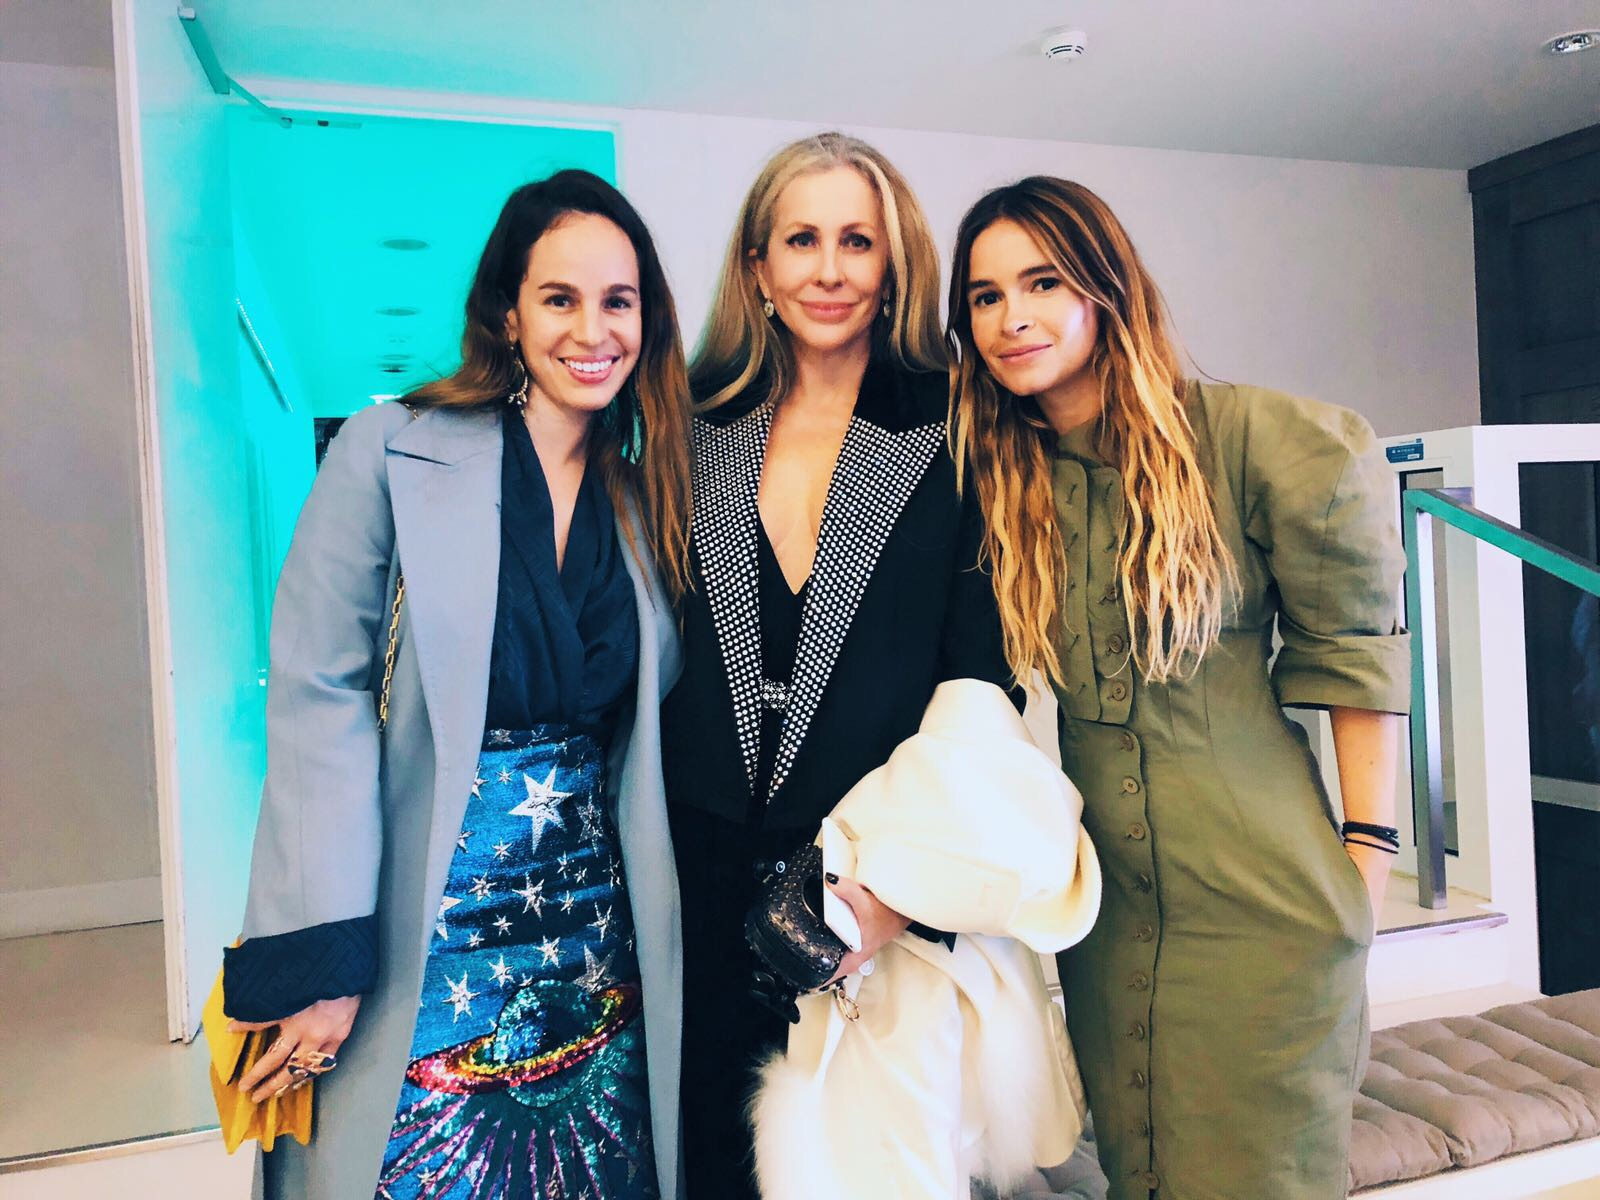 Carmen pictured with jewelry designer Daniela Villegas and Fashion Tech Lab founder Mira Duma at Monday's FTL launch event in Paris